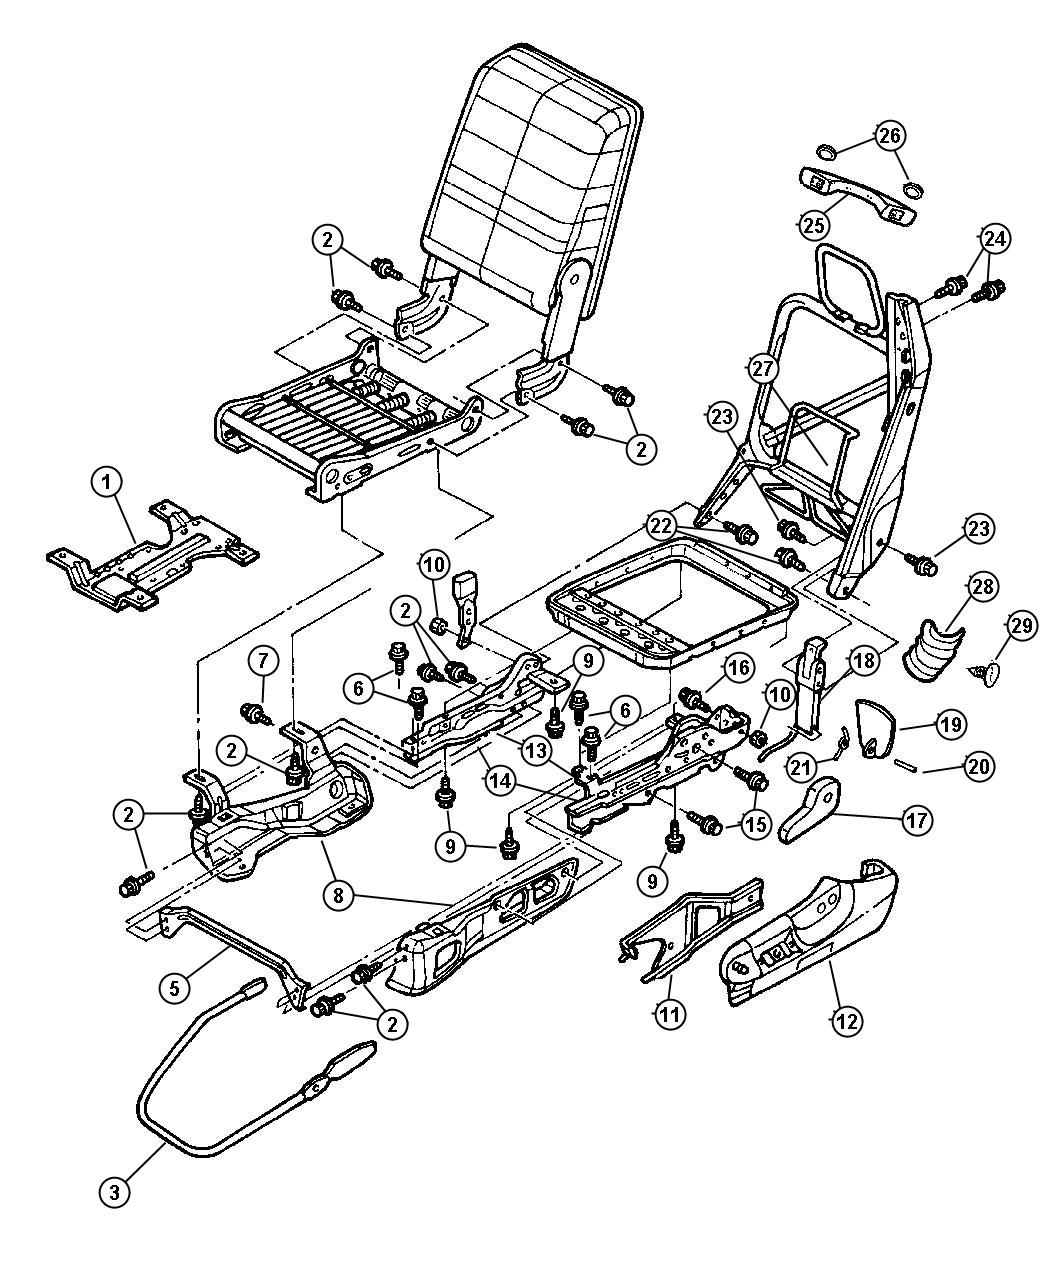 hight resolution of 2006 hummer h2 wiring diagram replacement seats for dodge truck